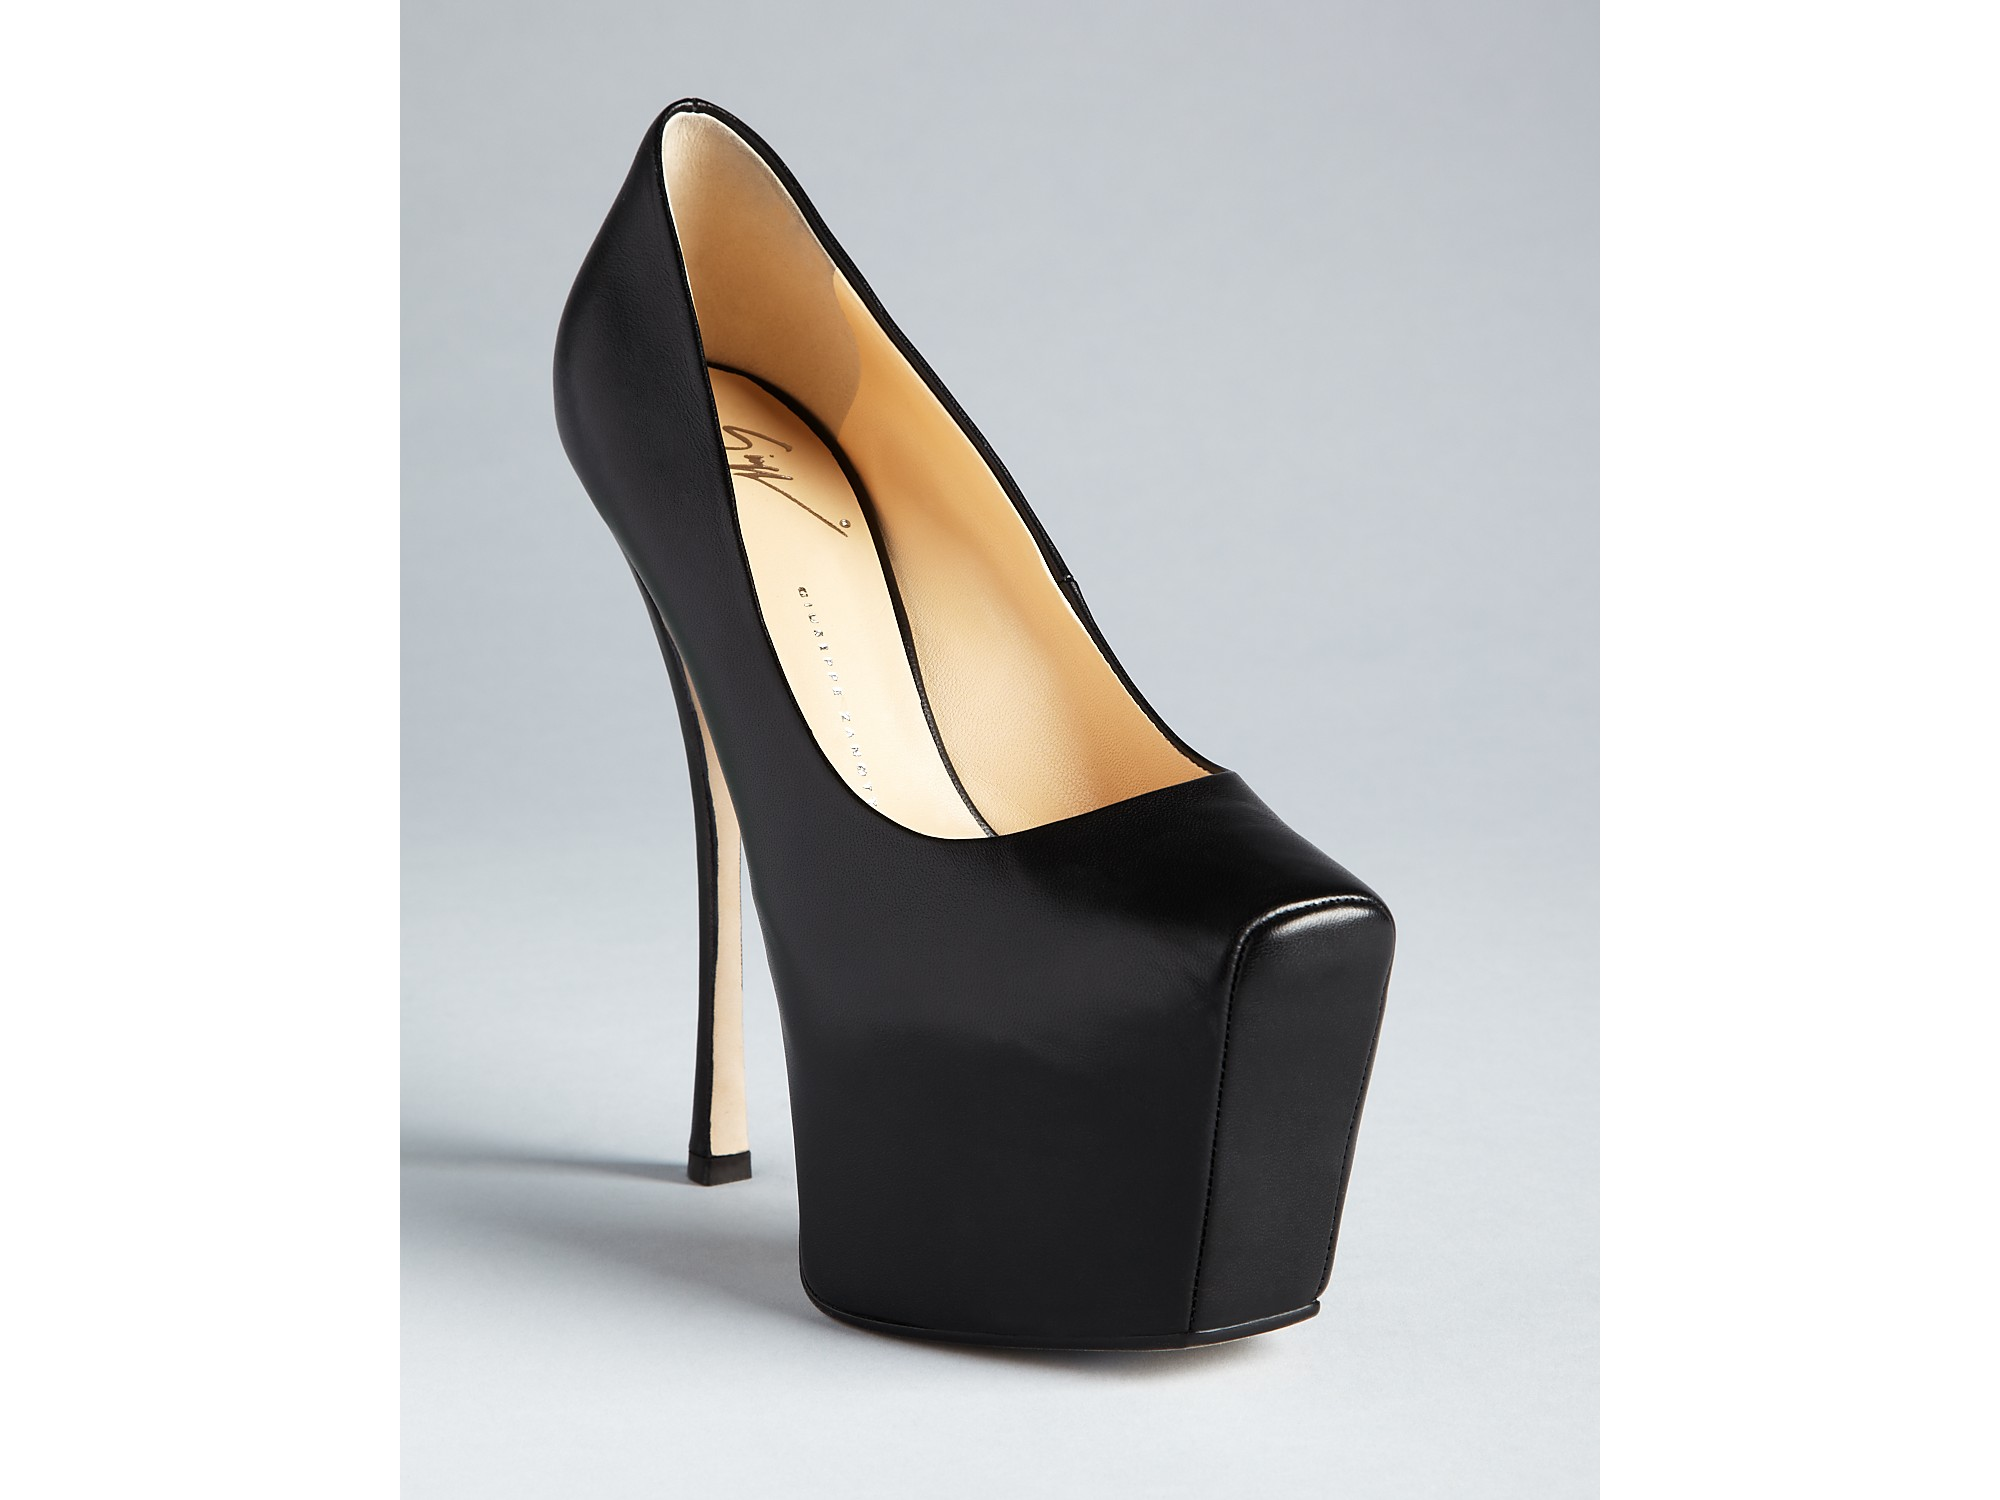 45e766dbb0d3 ... where to buy lyst giuseppe zanotti high heel platform pumps ambra in  black 0ae45 4f9ce